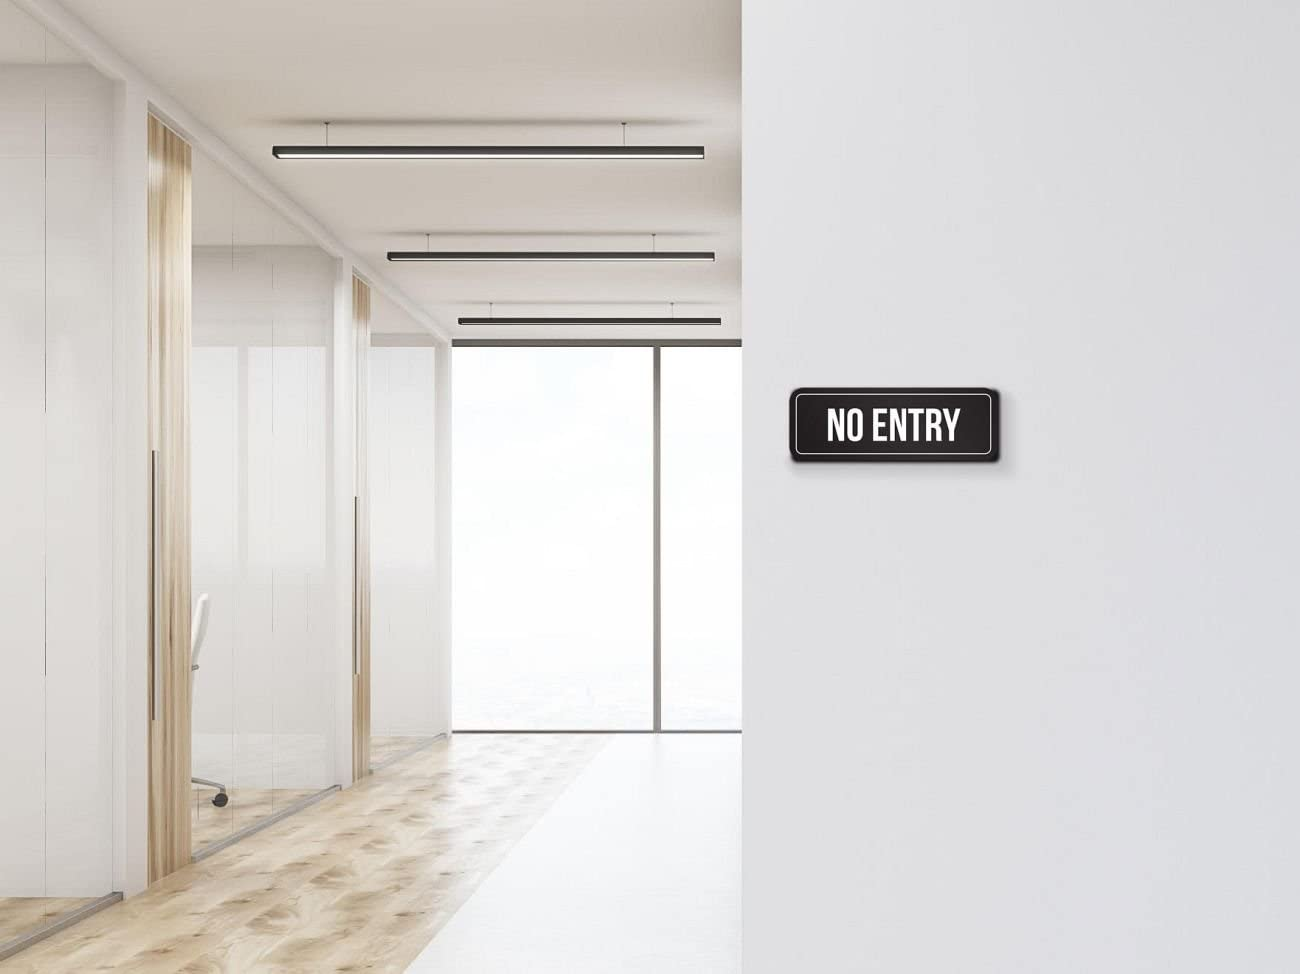 3x9 work place private privacy EMPLOYEES ONLY door sign hotel office commercial entrance